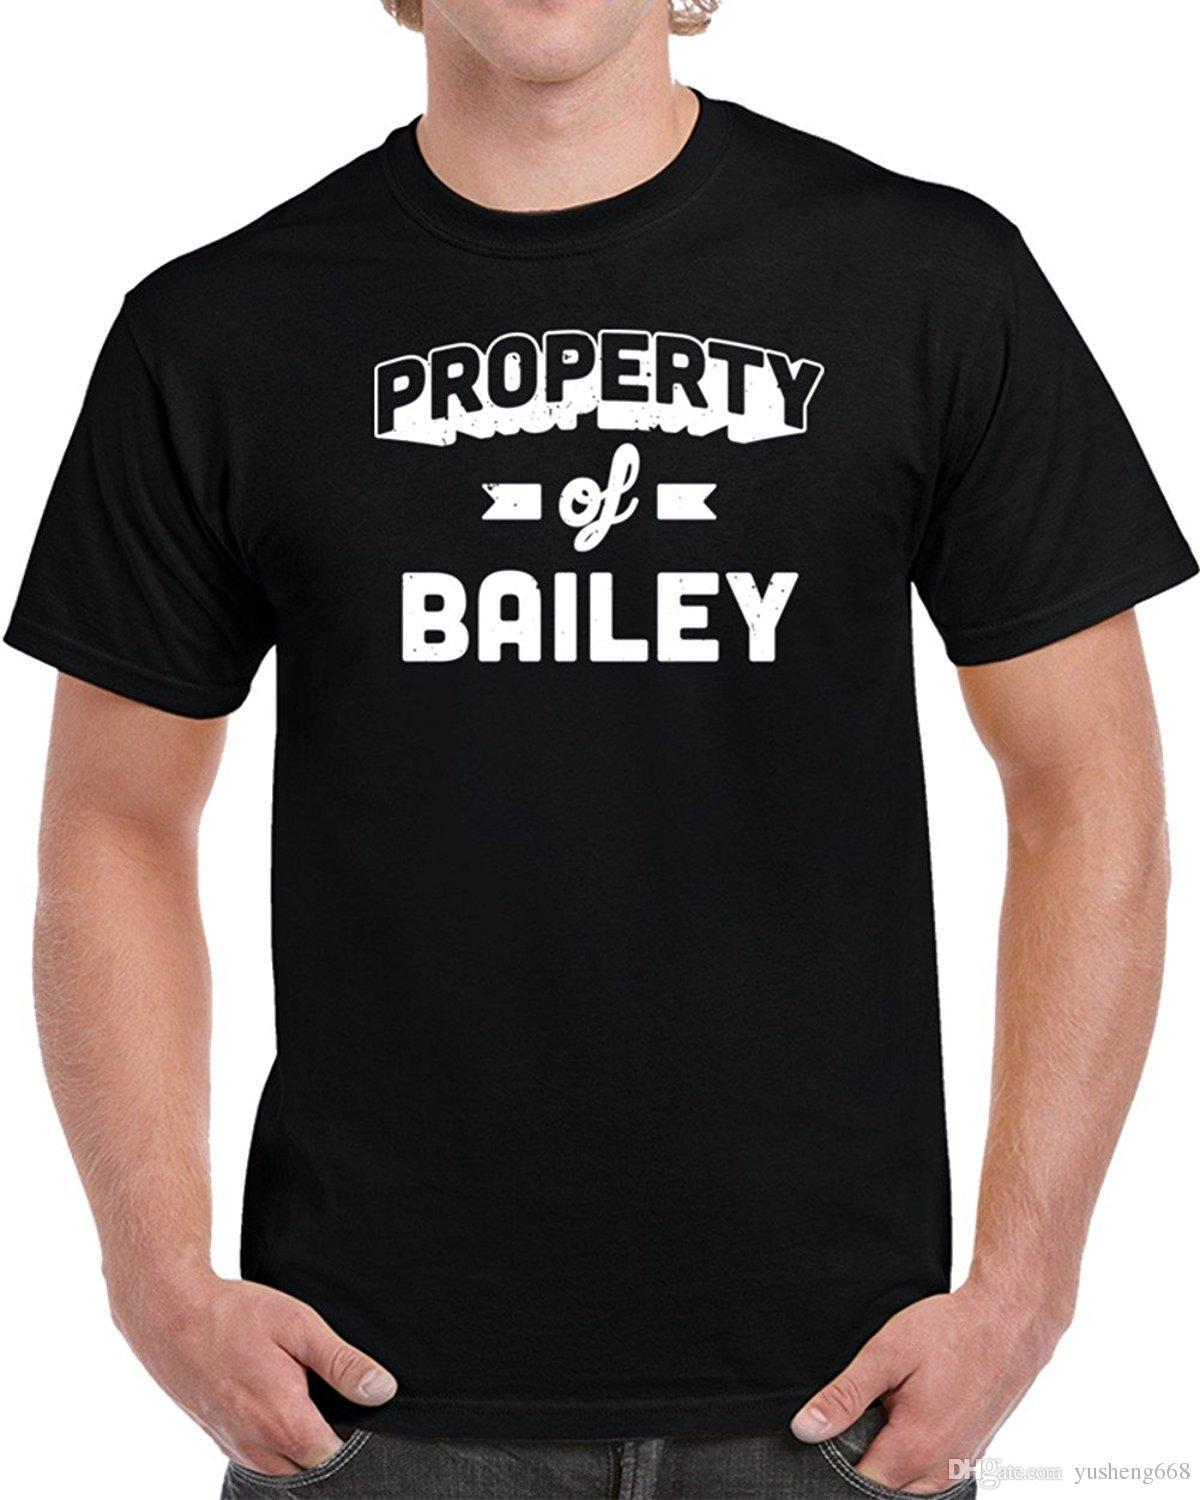 686bc422a10387 Property Of Bailey Men S T Shirt Family T Shirts Printed Shirt From  Lefan02